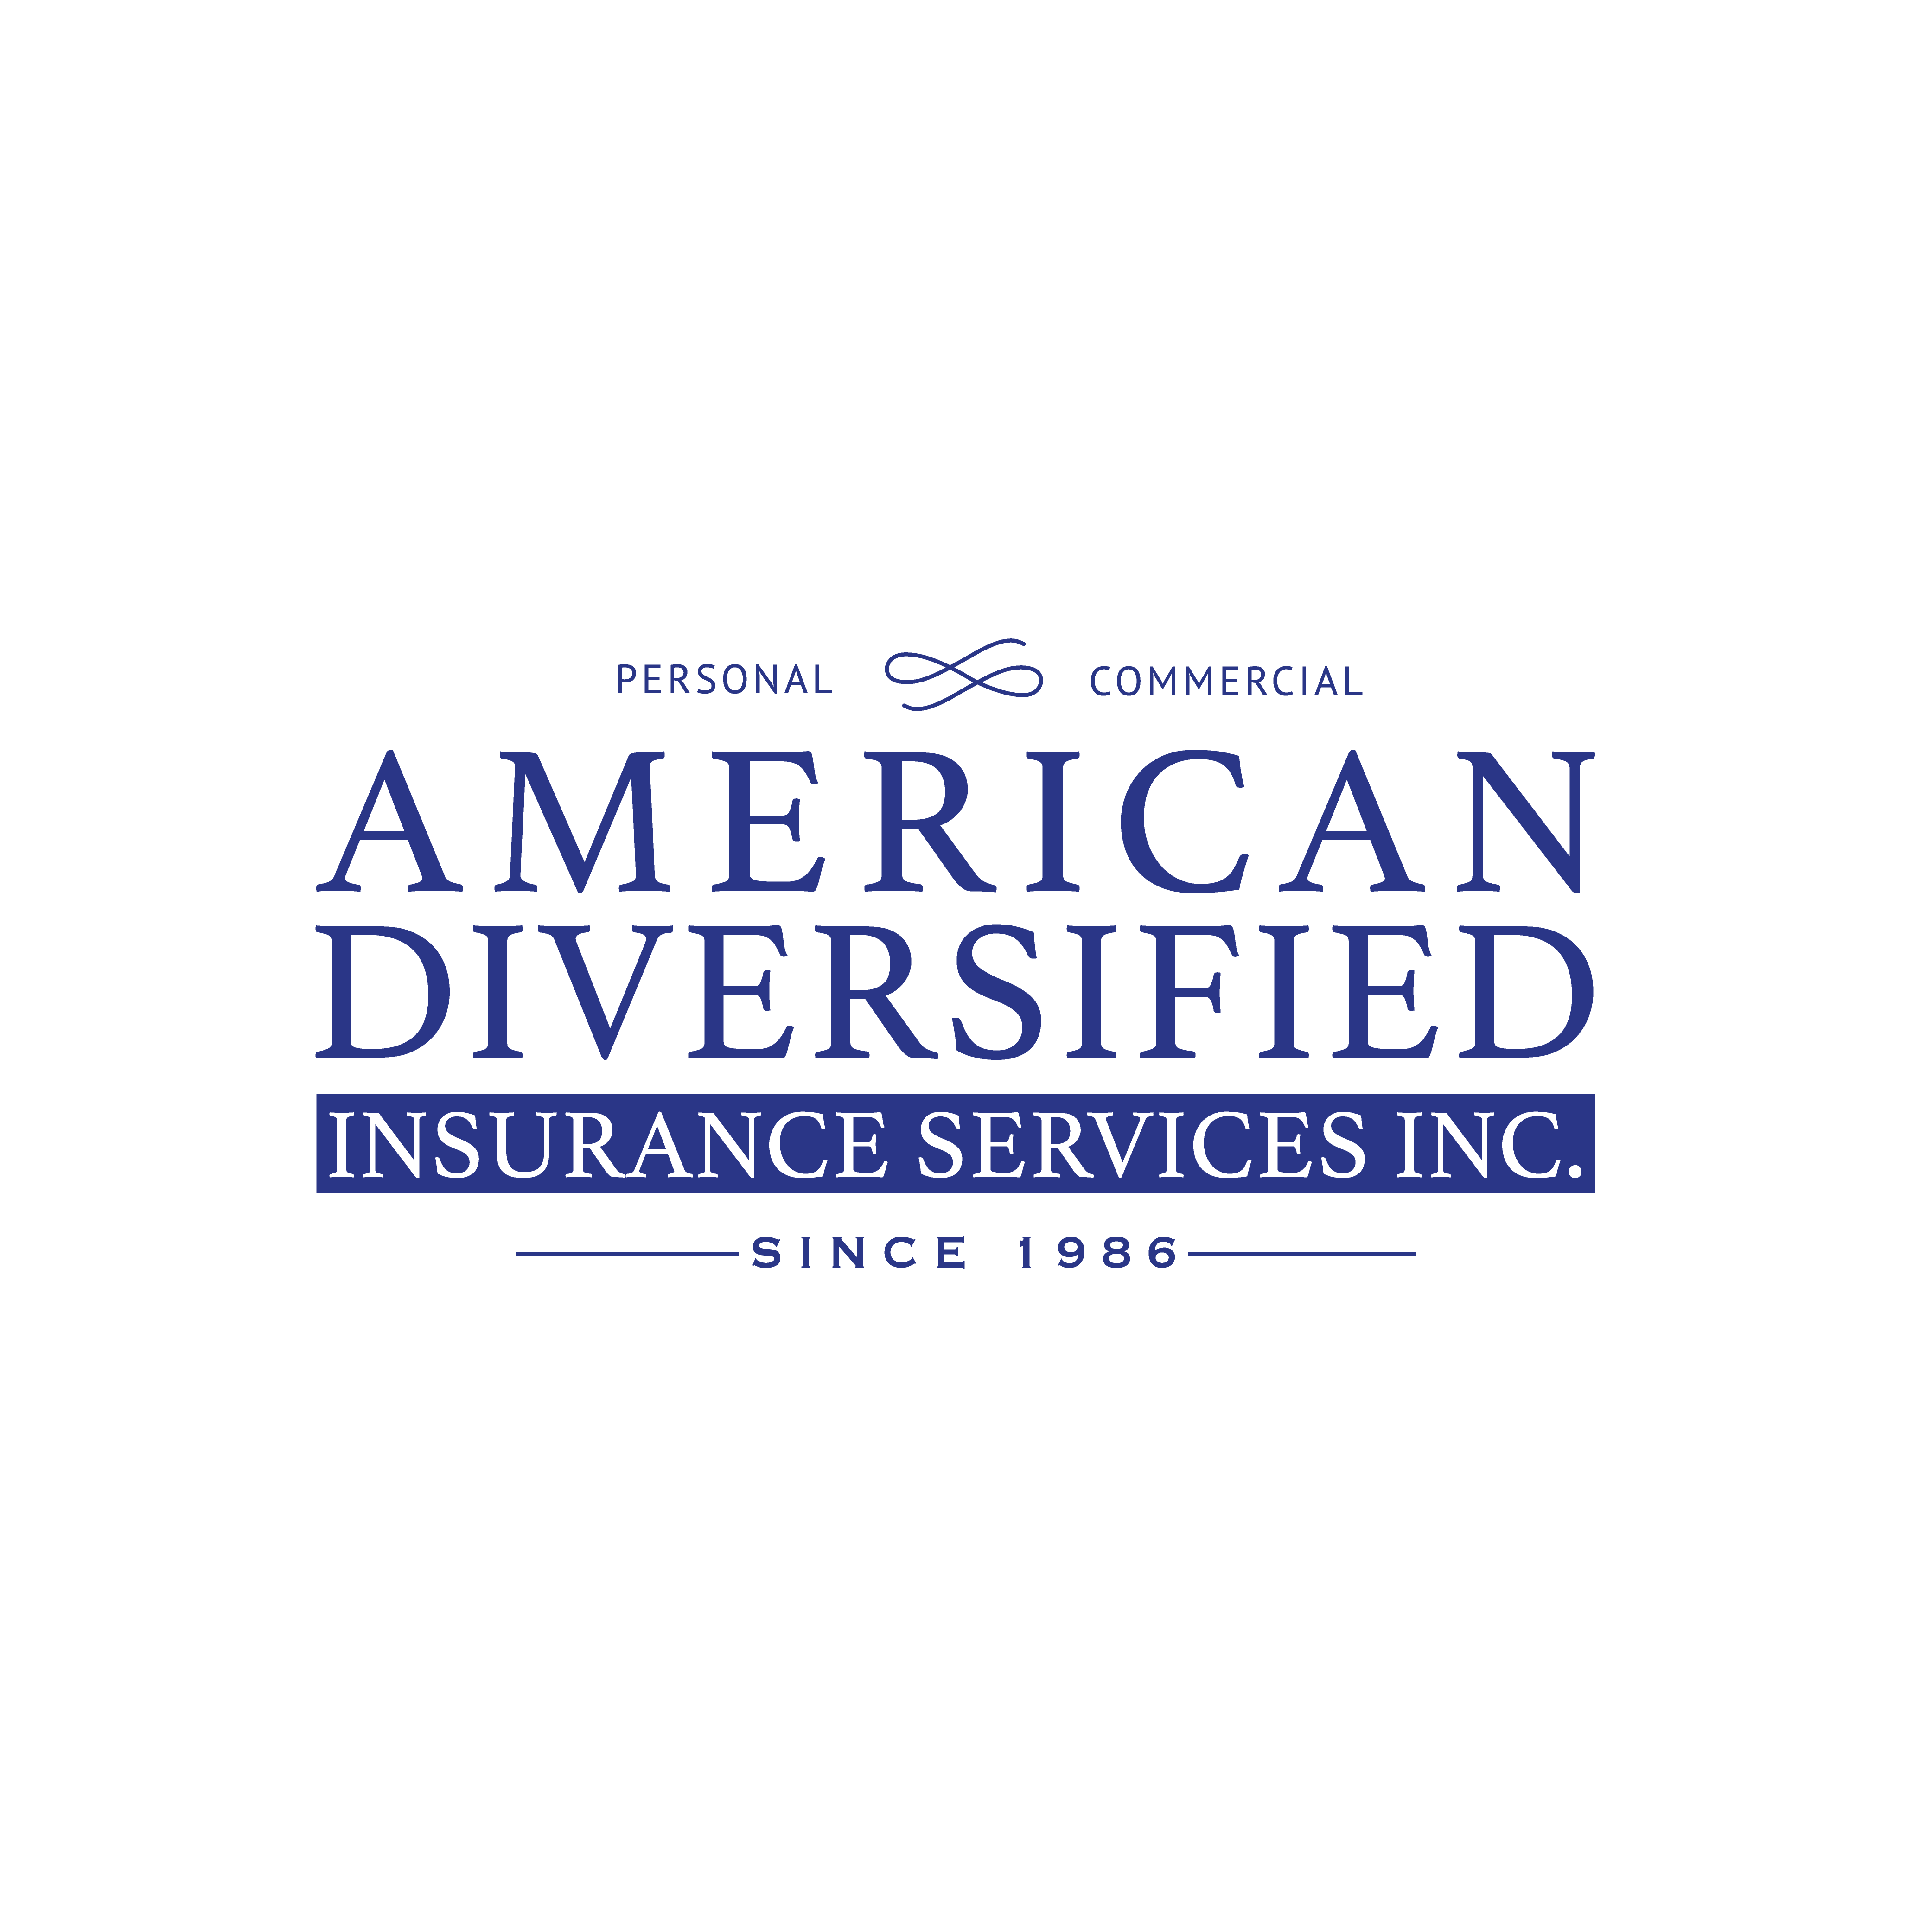 create a simple and stand apart logo for an Independent Insurance Agency